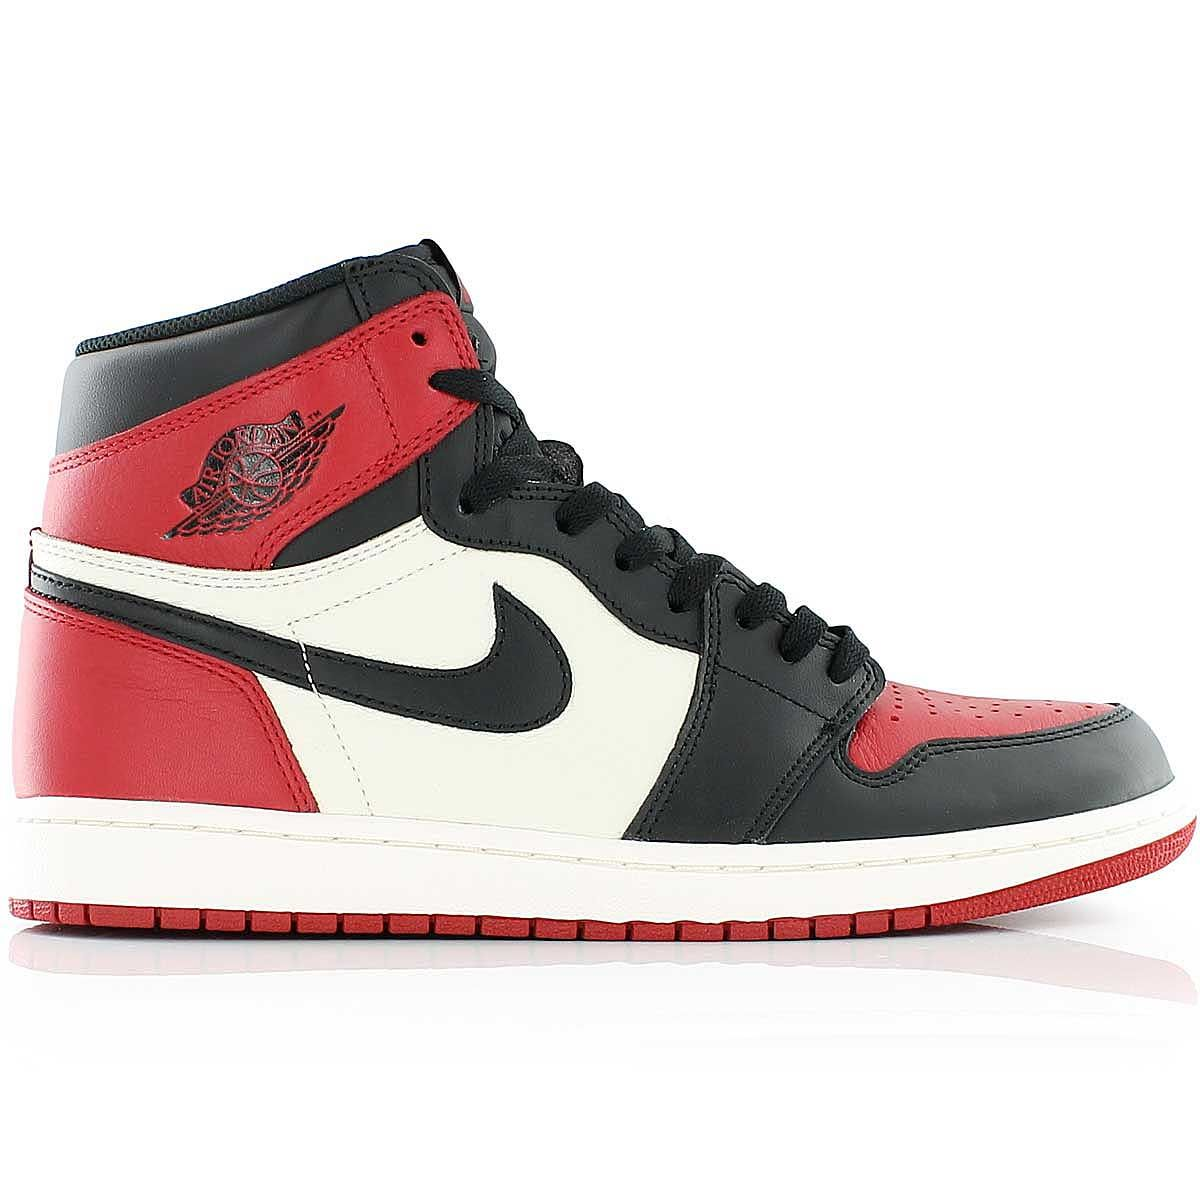 a5706b53aeaf0 Air Jordan 1 Retro High OG